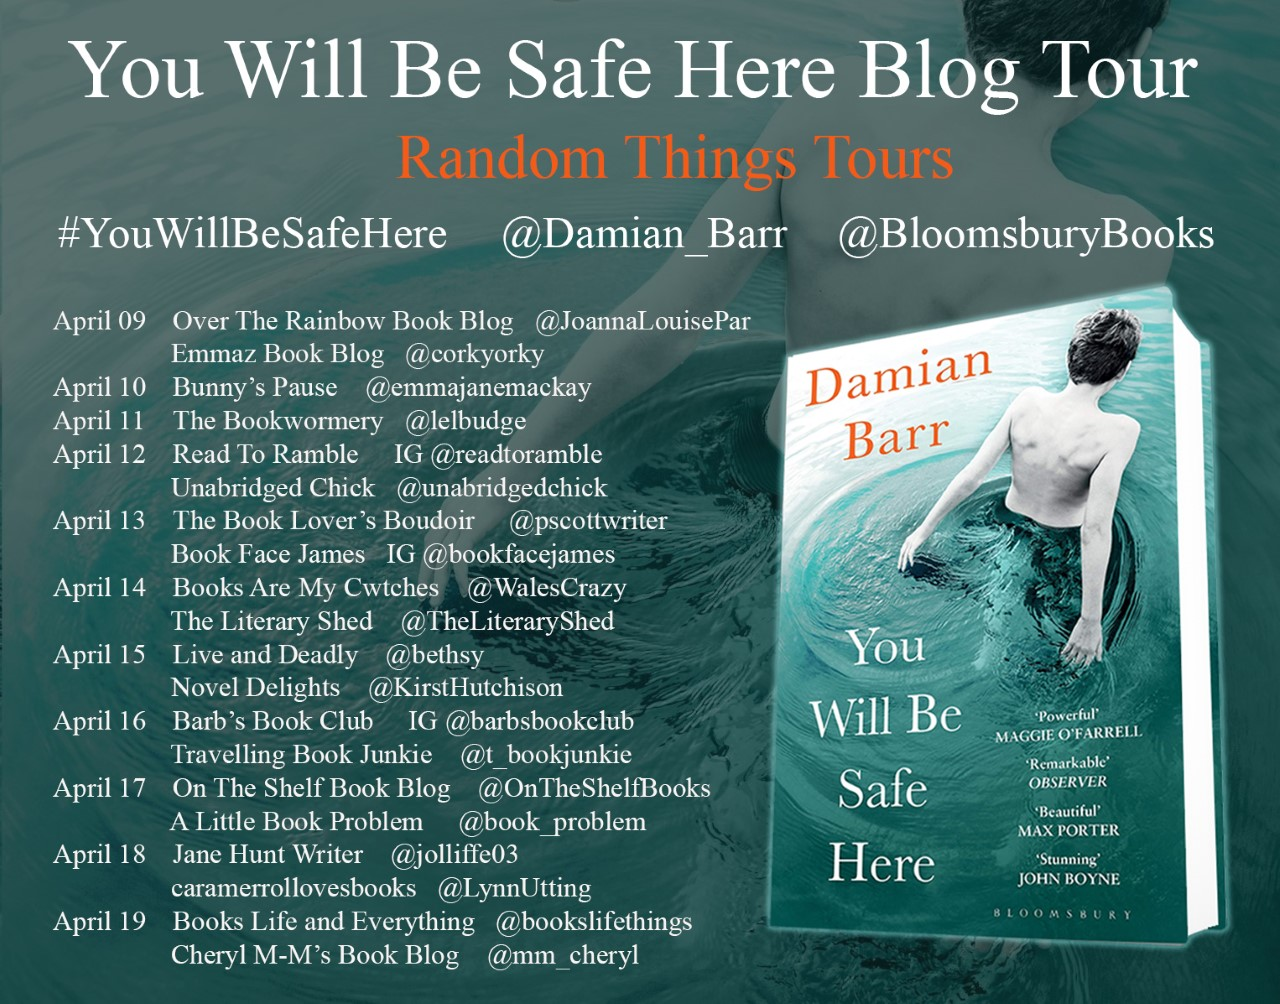 You Will Be Safe Here BT Poster 2